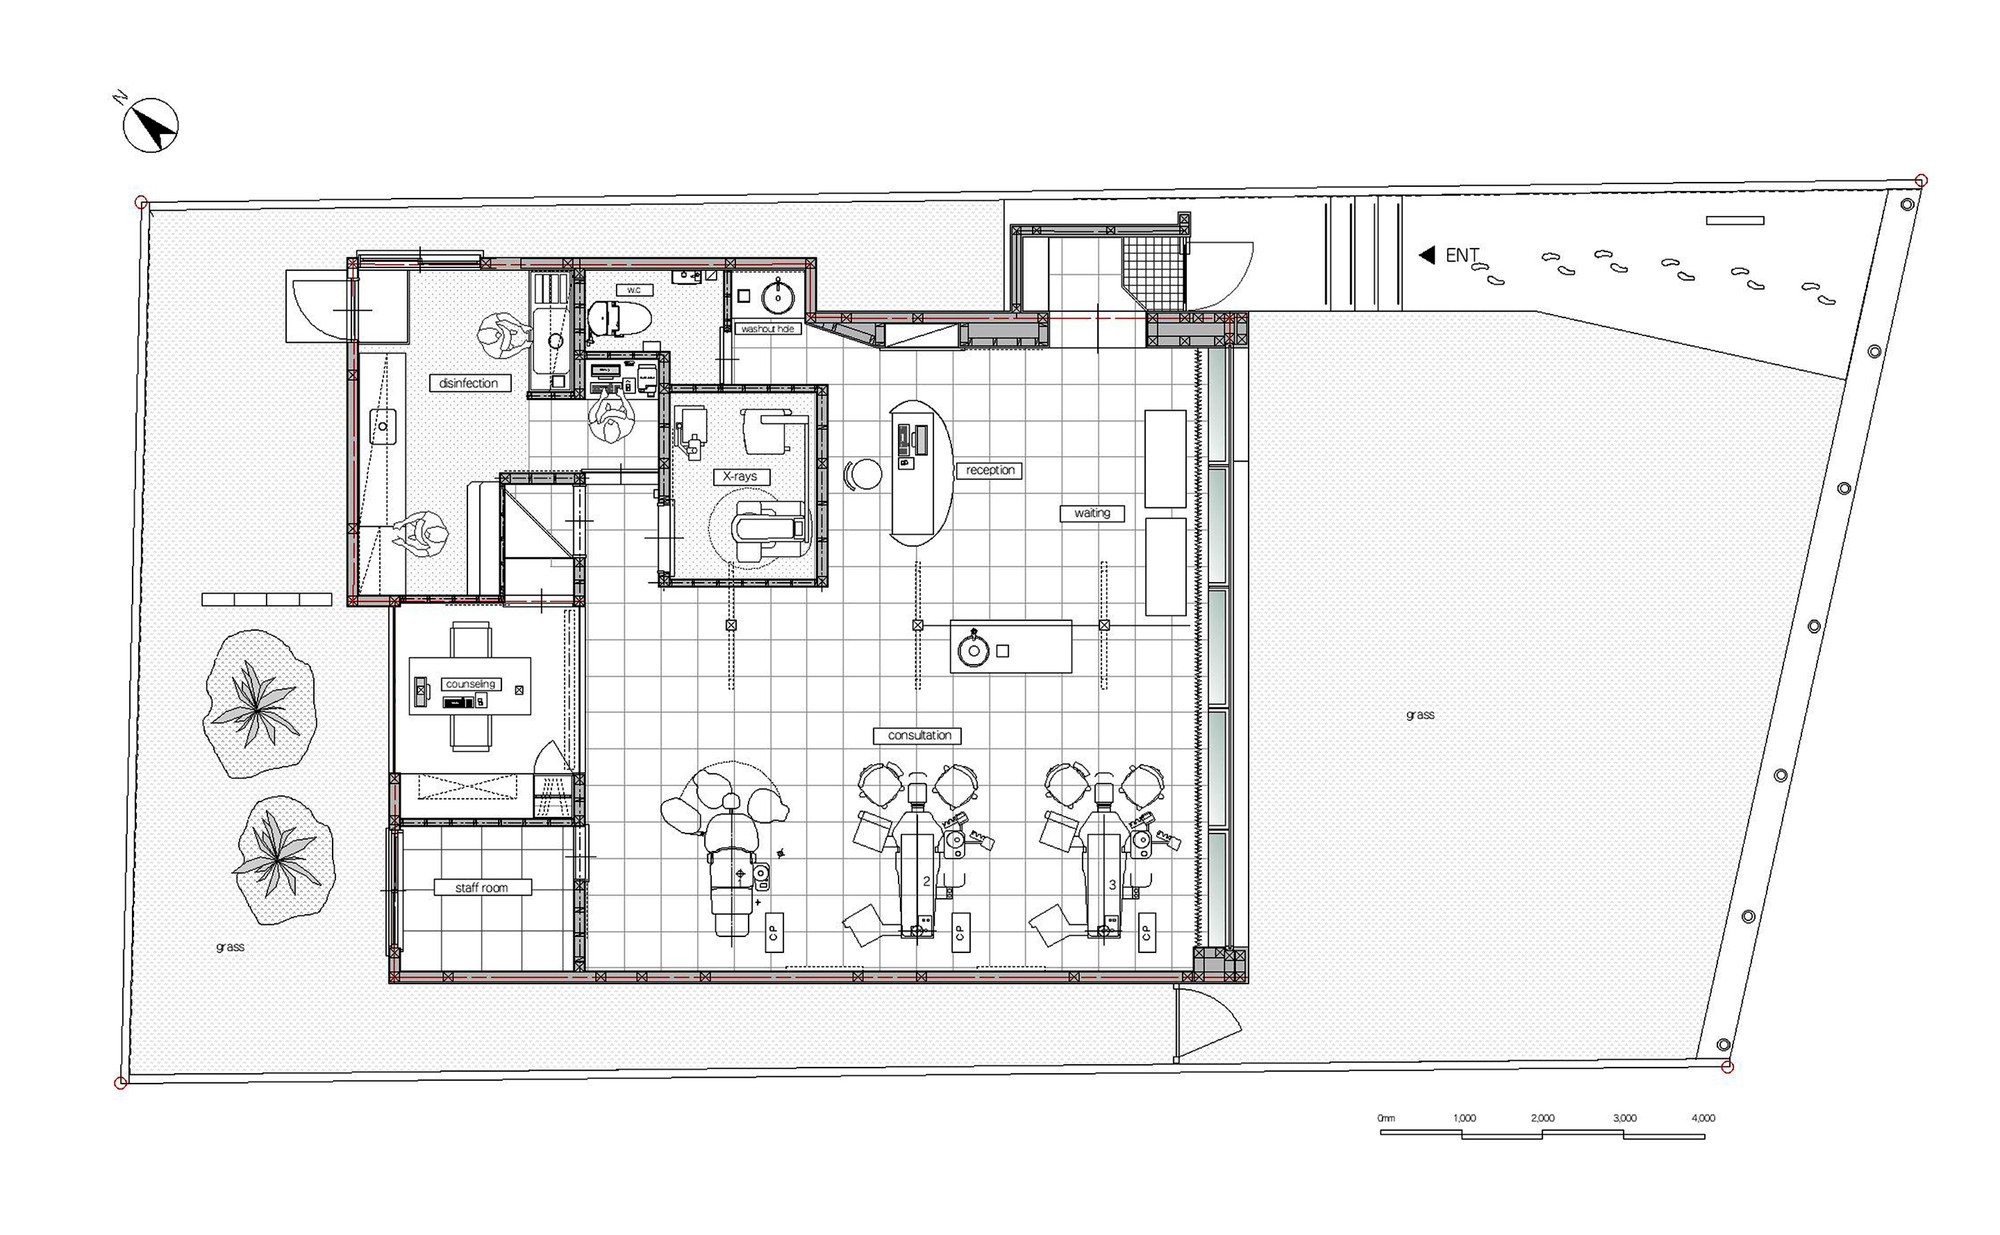 442478732123884274 in addition Reception 20Designs additionally Floor Plan On Dental Chair likewise New Belgium Pilot Brewery further 216843. on dental office floor plan design